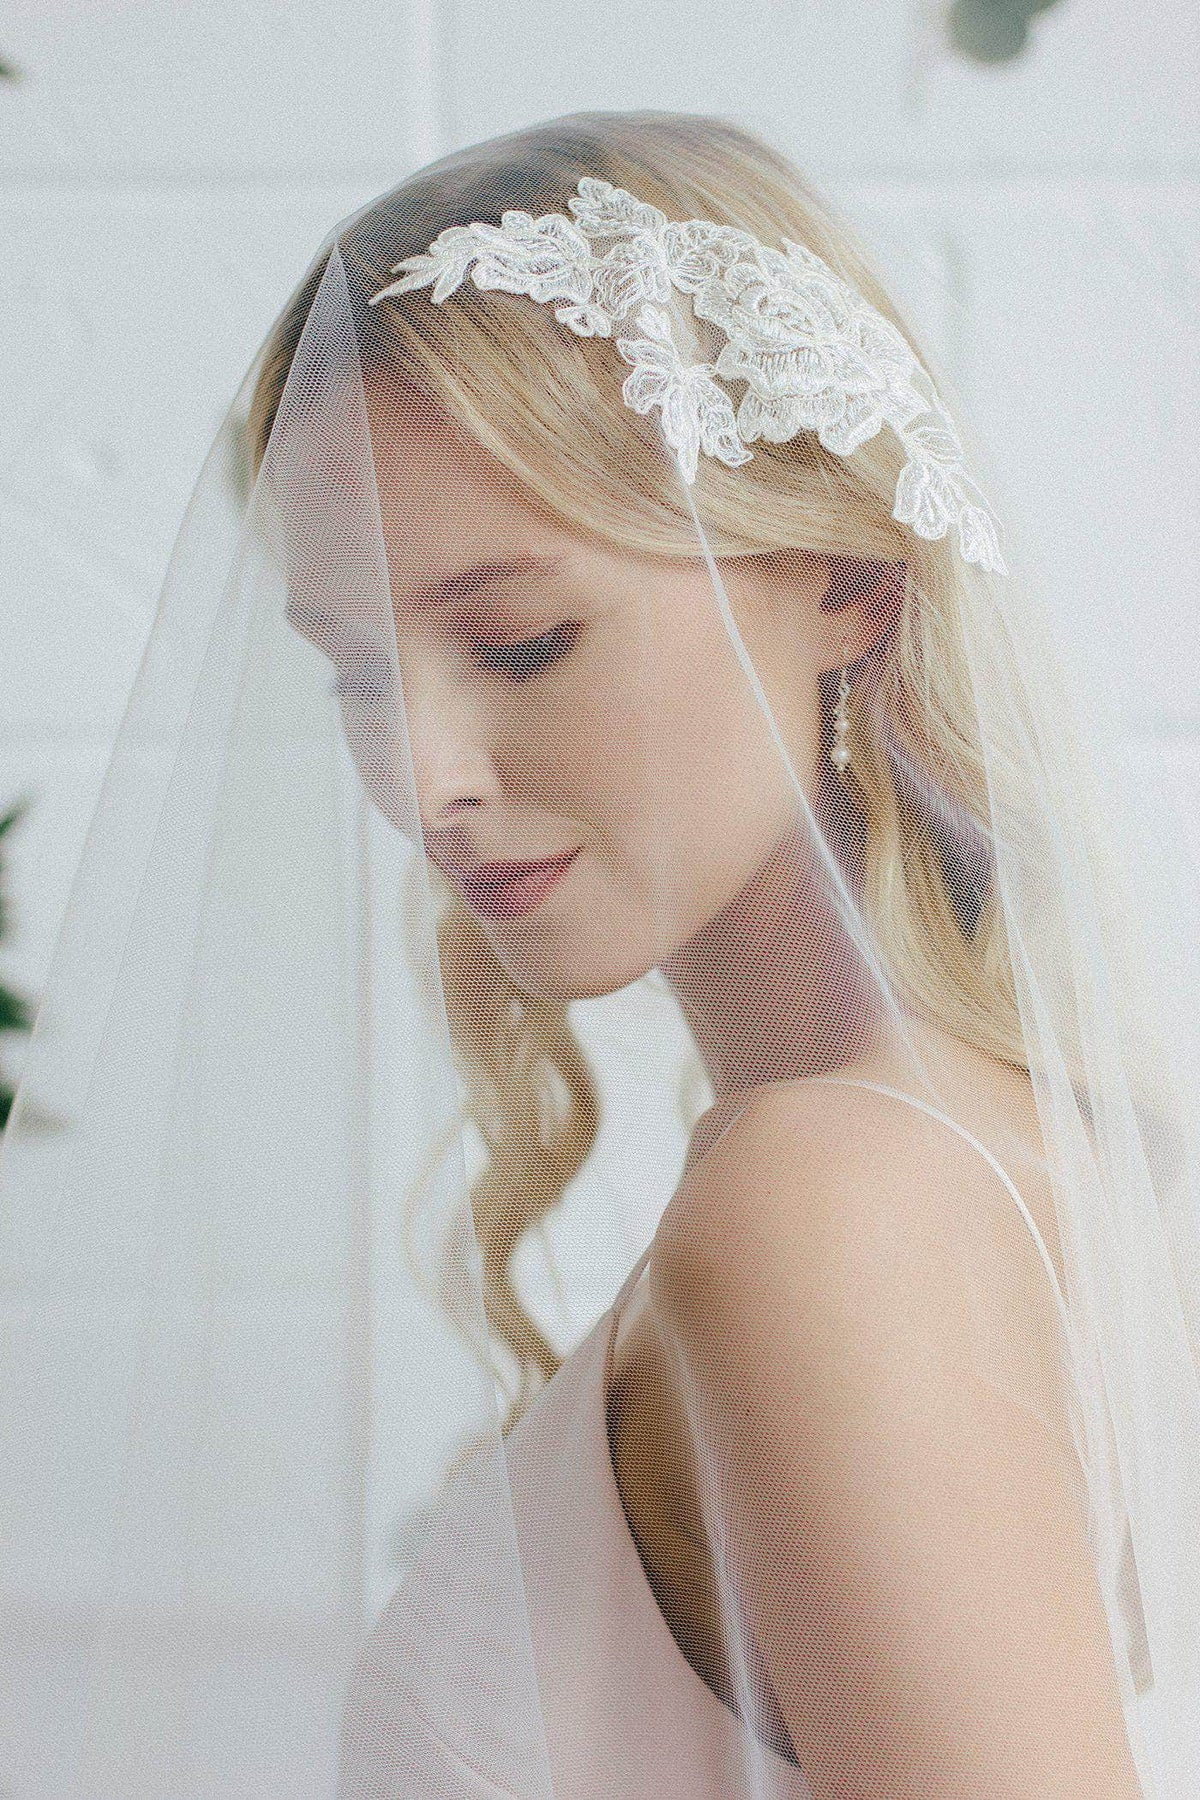 Wedding Veil Drop wedding veil with lace motif - 'Adora'